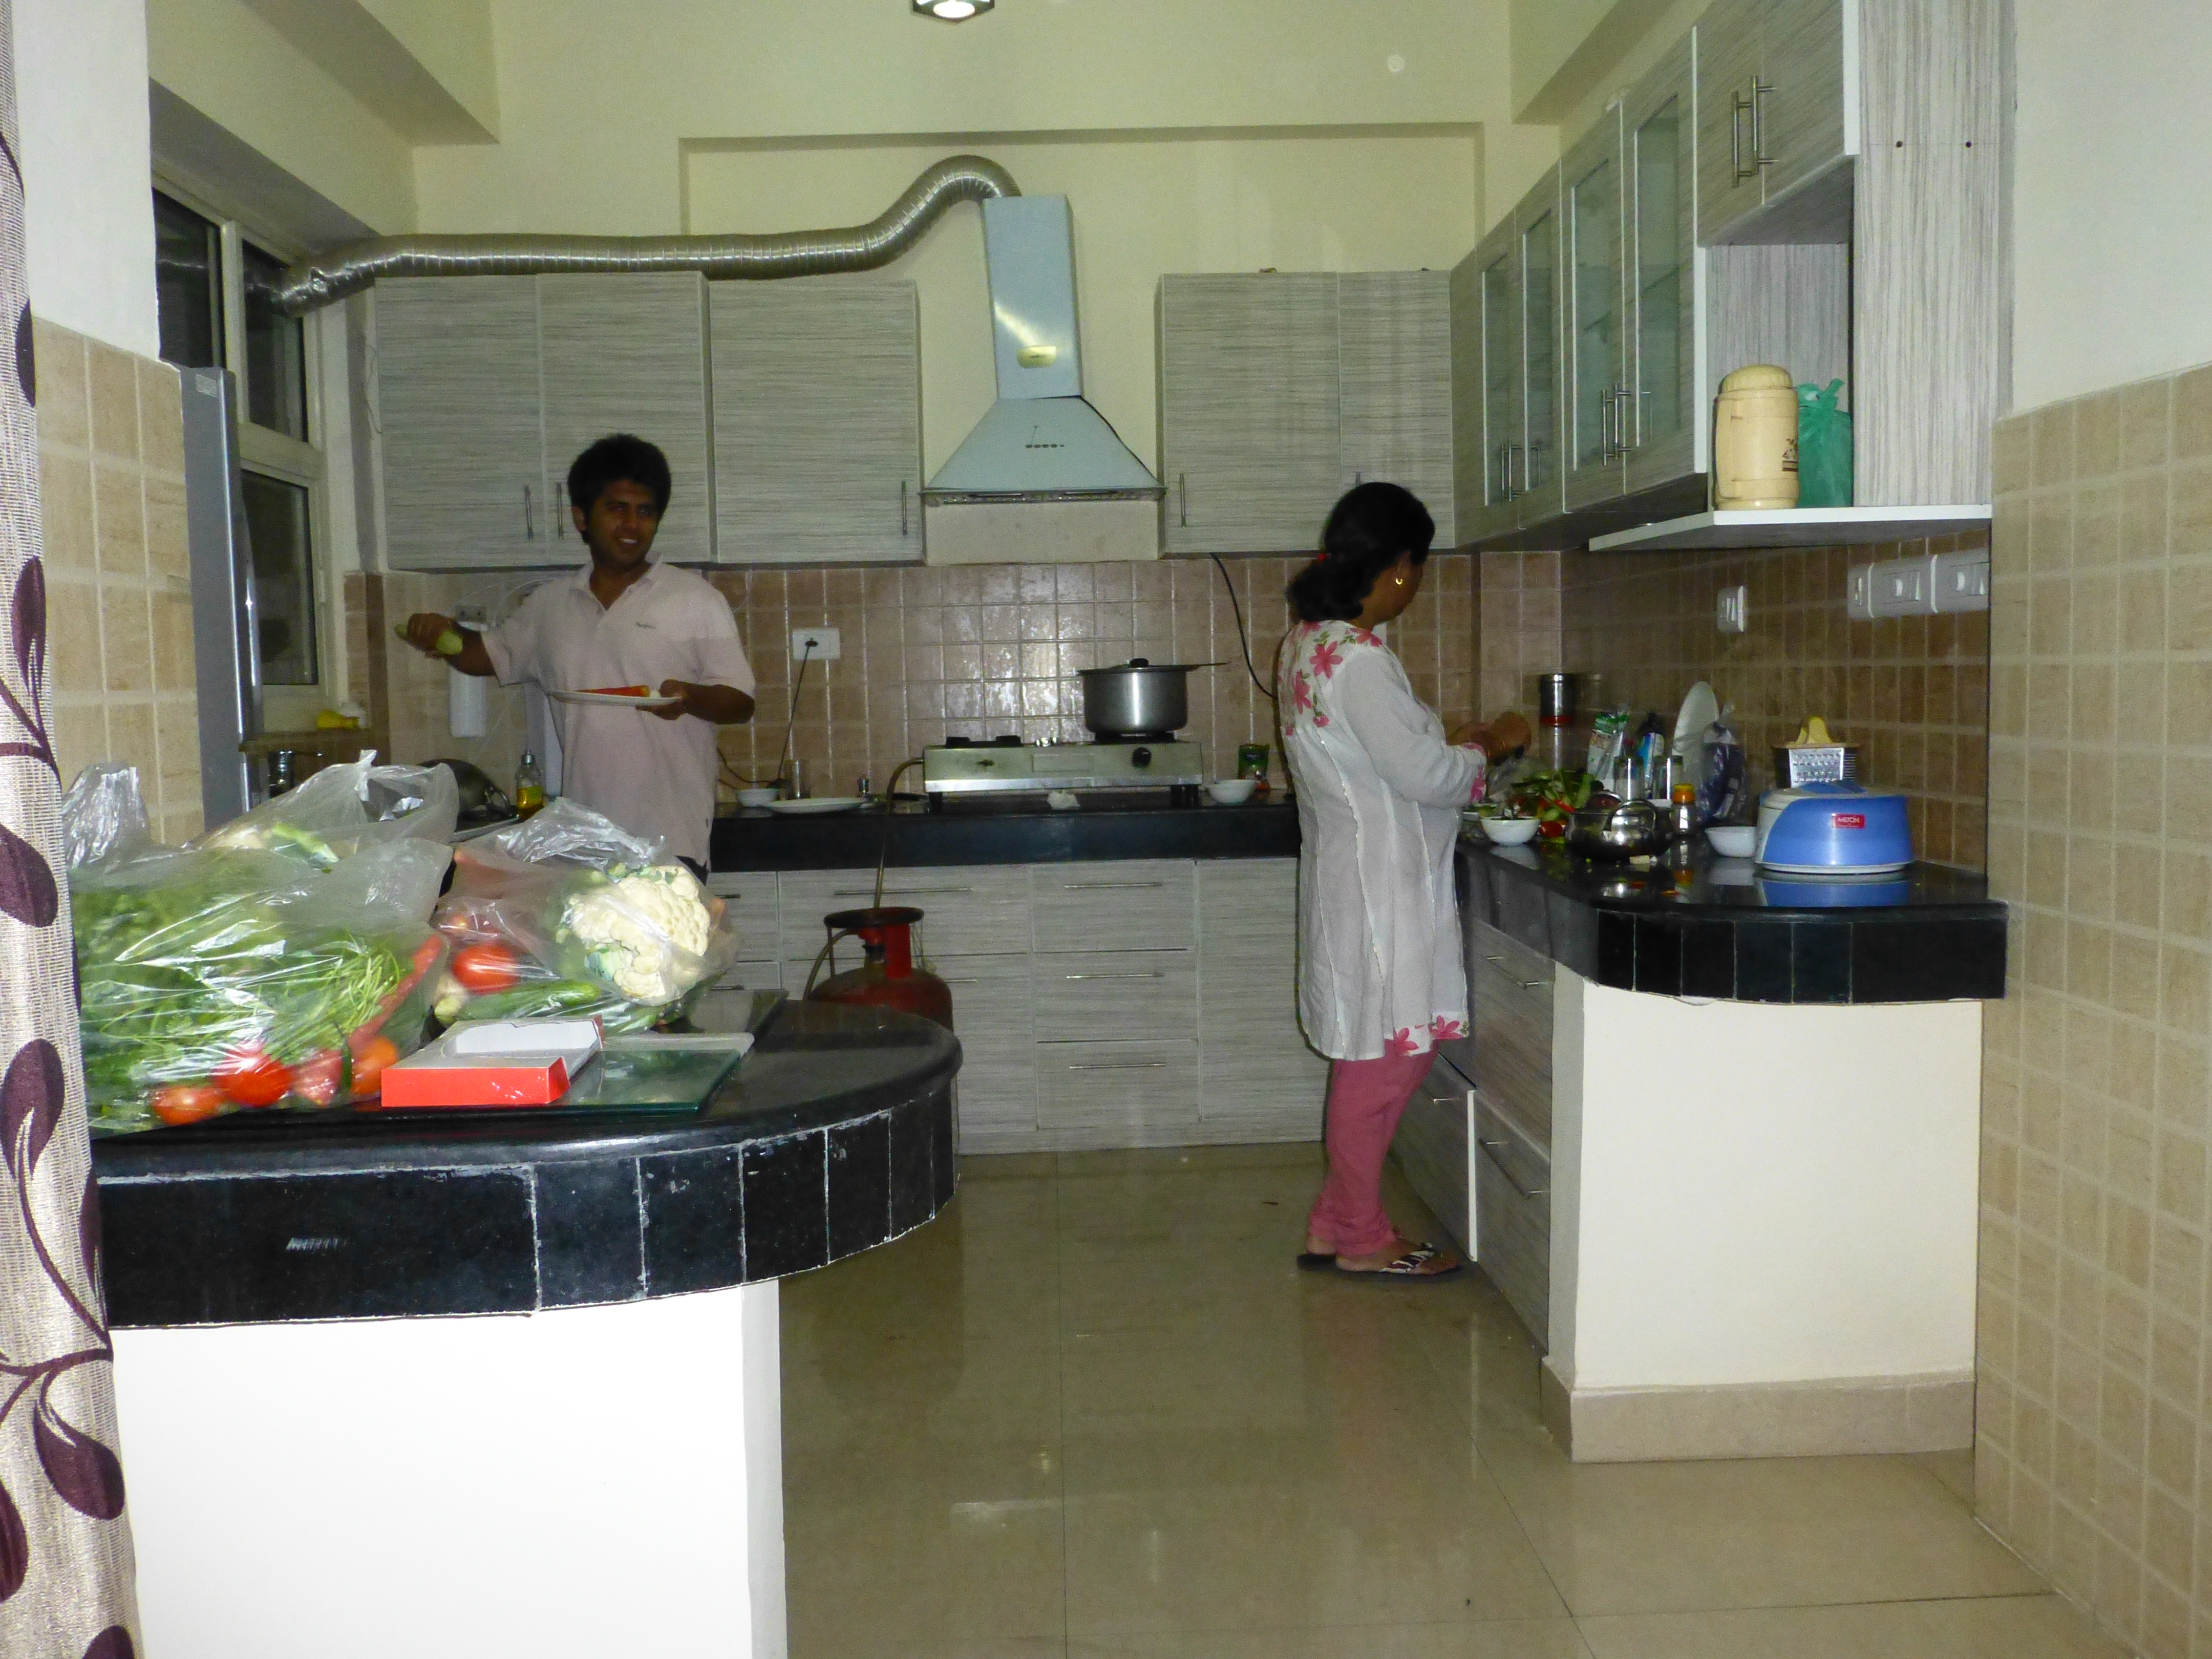 Eclectic Kitchen Decor Made Simple